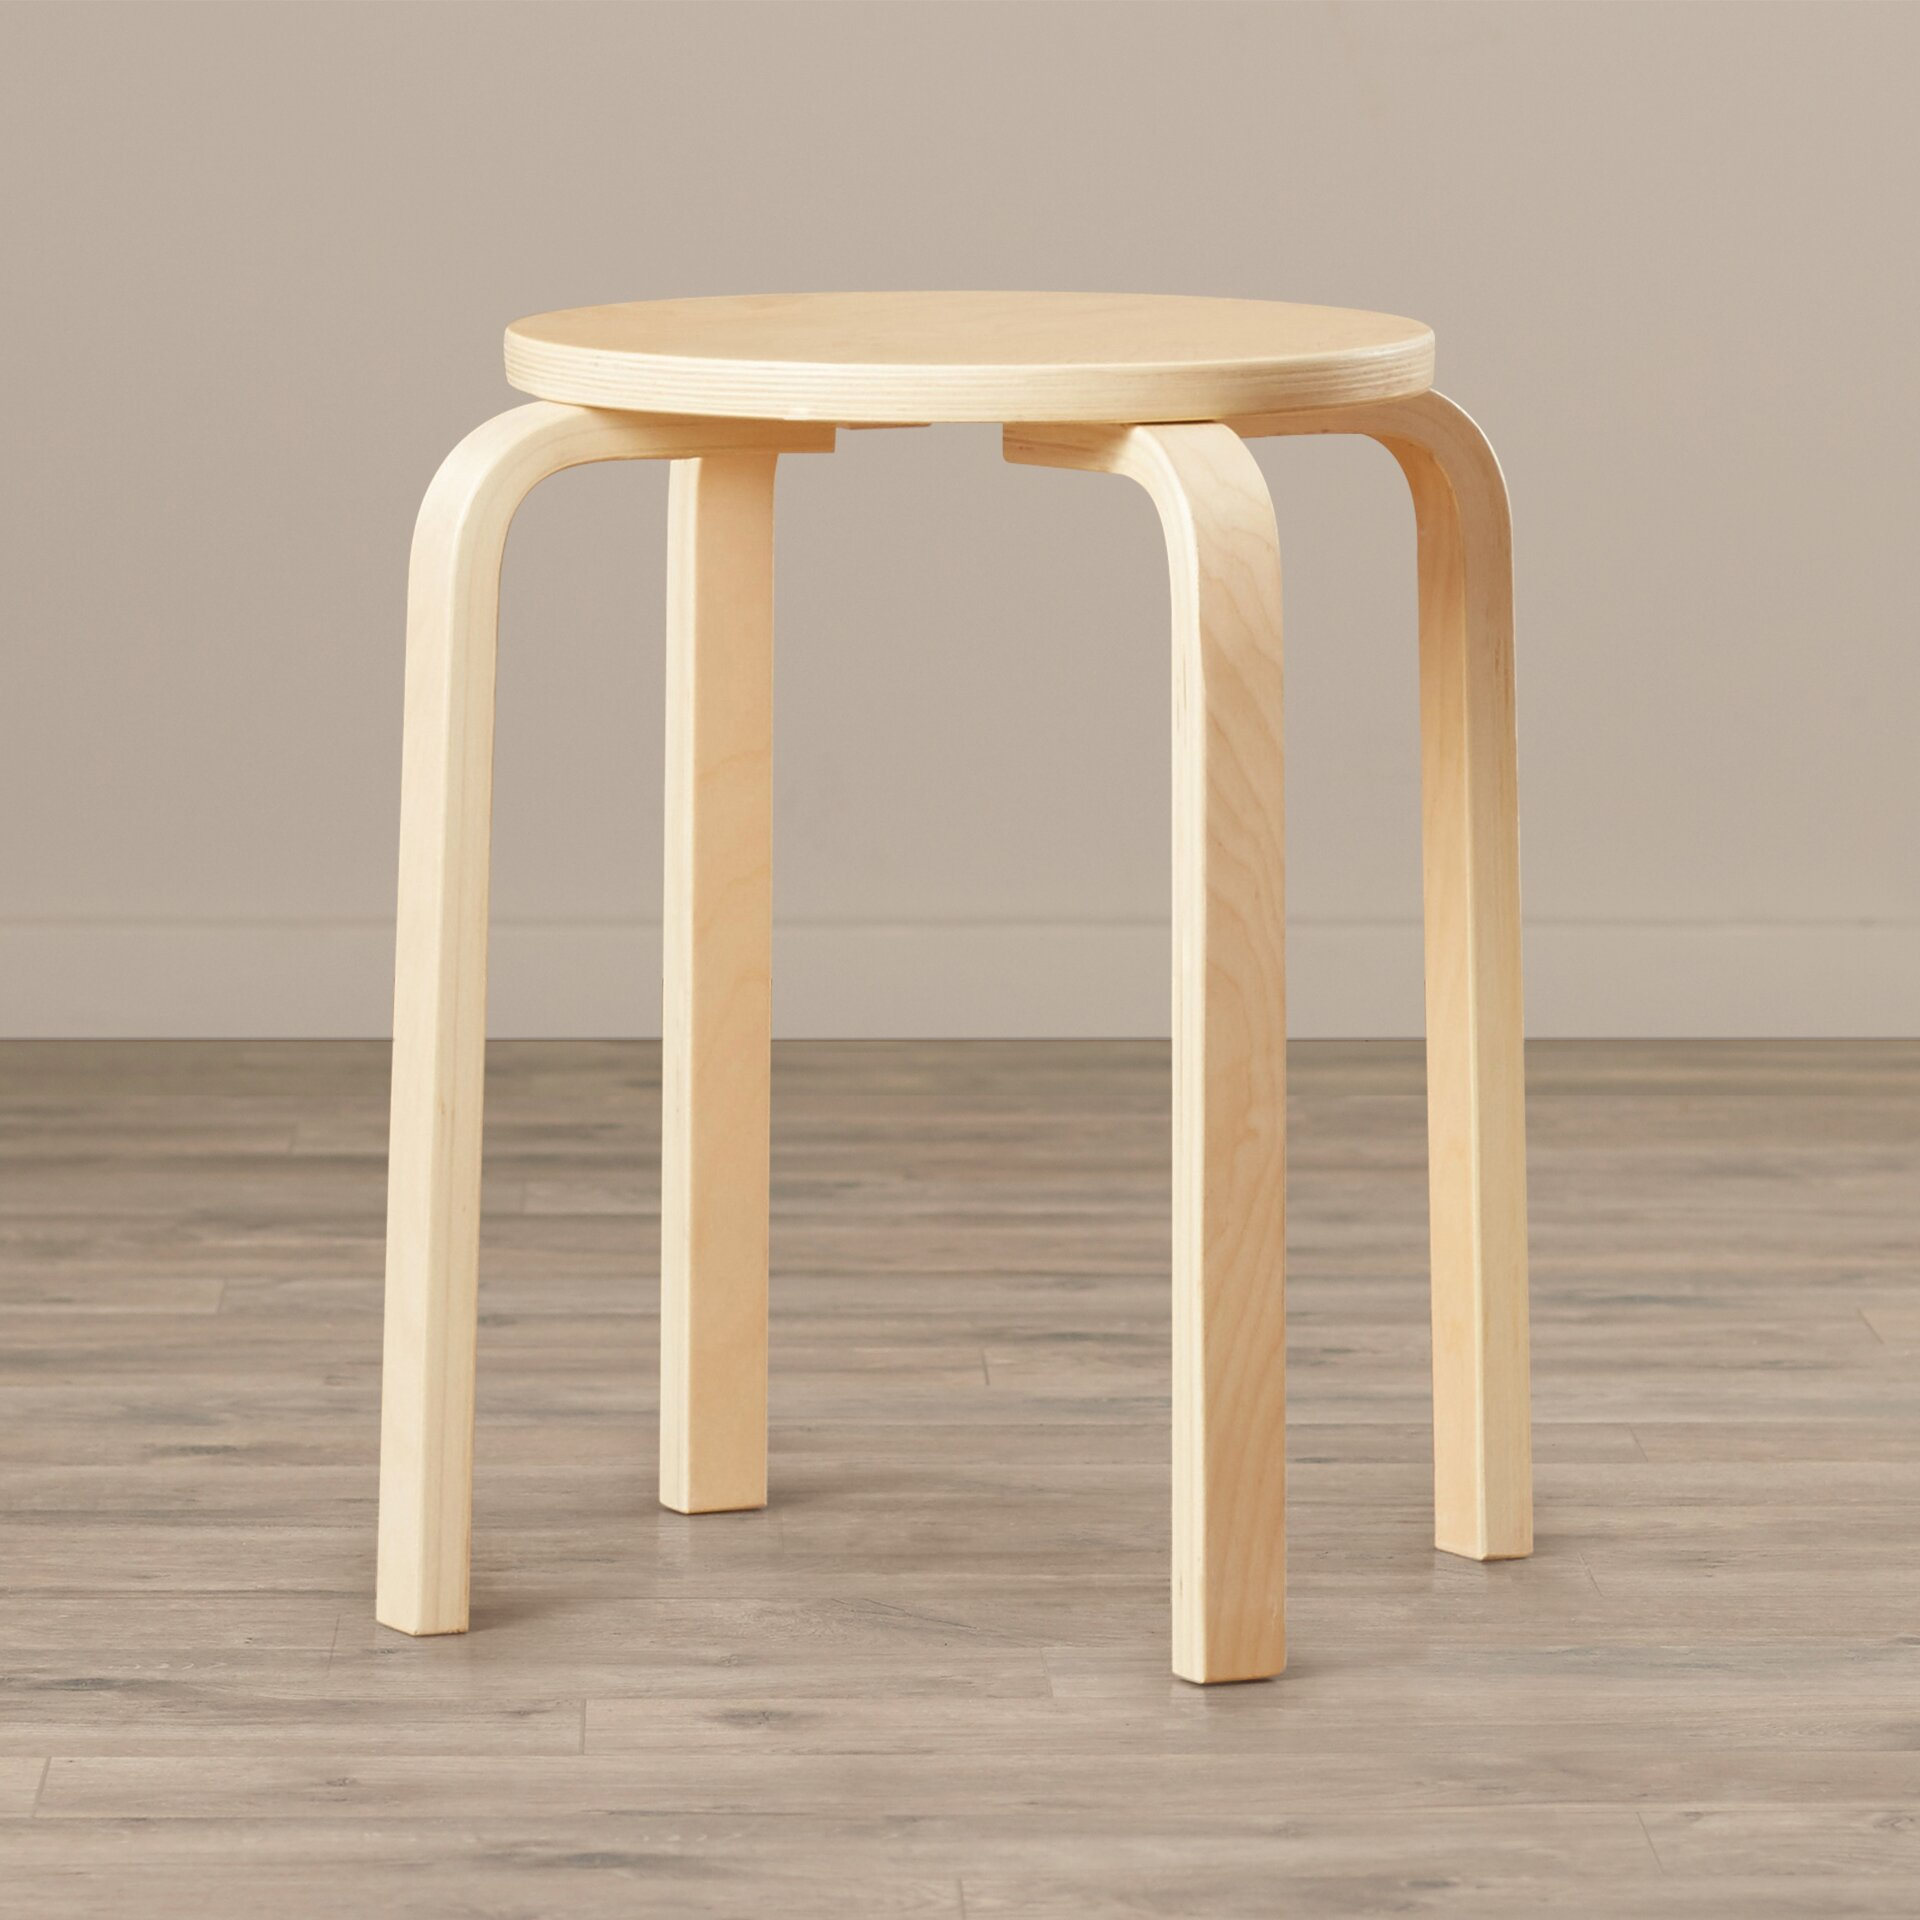 https://secure.img.wfrcdn.com/lf/maxsquare/hash/36990/25526913/1/Alia-Short-Stacking-18-Bar-Stool-CSTD1388.jpg